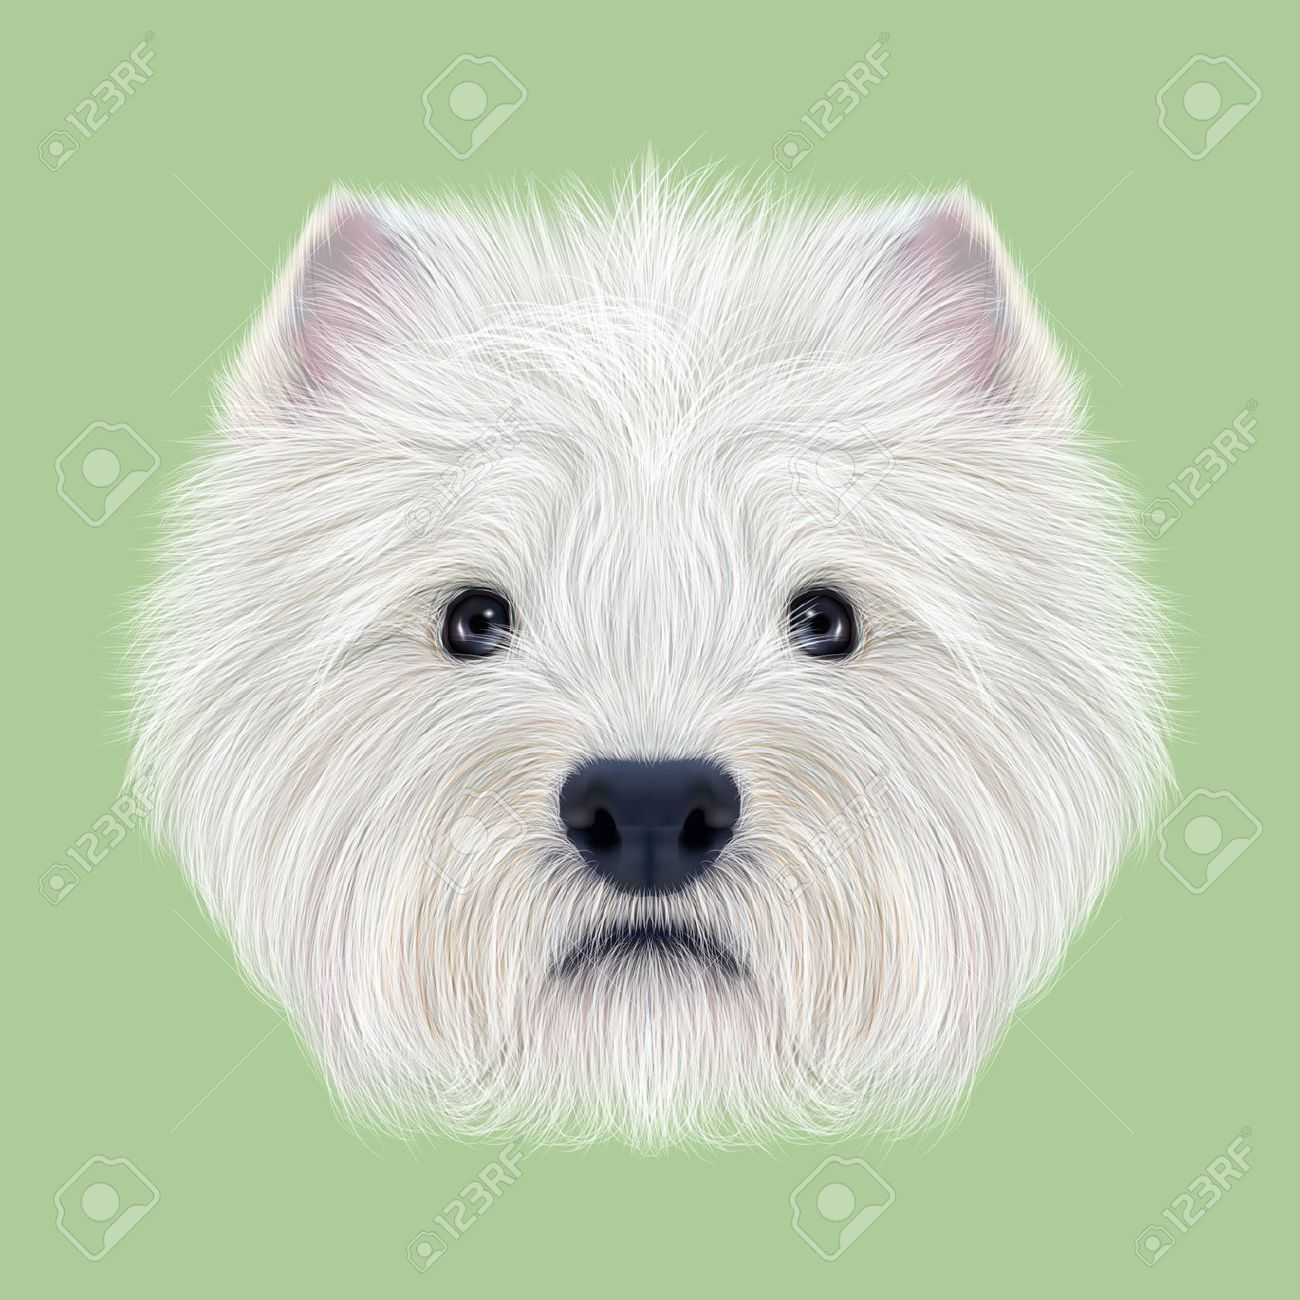 Charmful West Land Fluffy Faceof Domestic Dog On Illustrated Portrait Pets Fluffy Dog Breeds West Land Fluffy Fluffy Dog Illustrated Portrait Secret Life bark post Fluffy White Dog